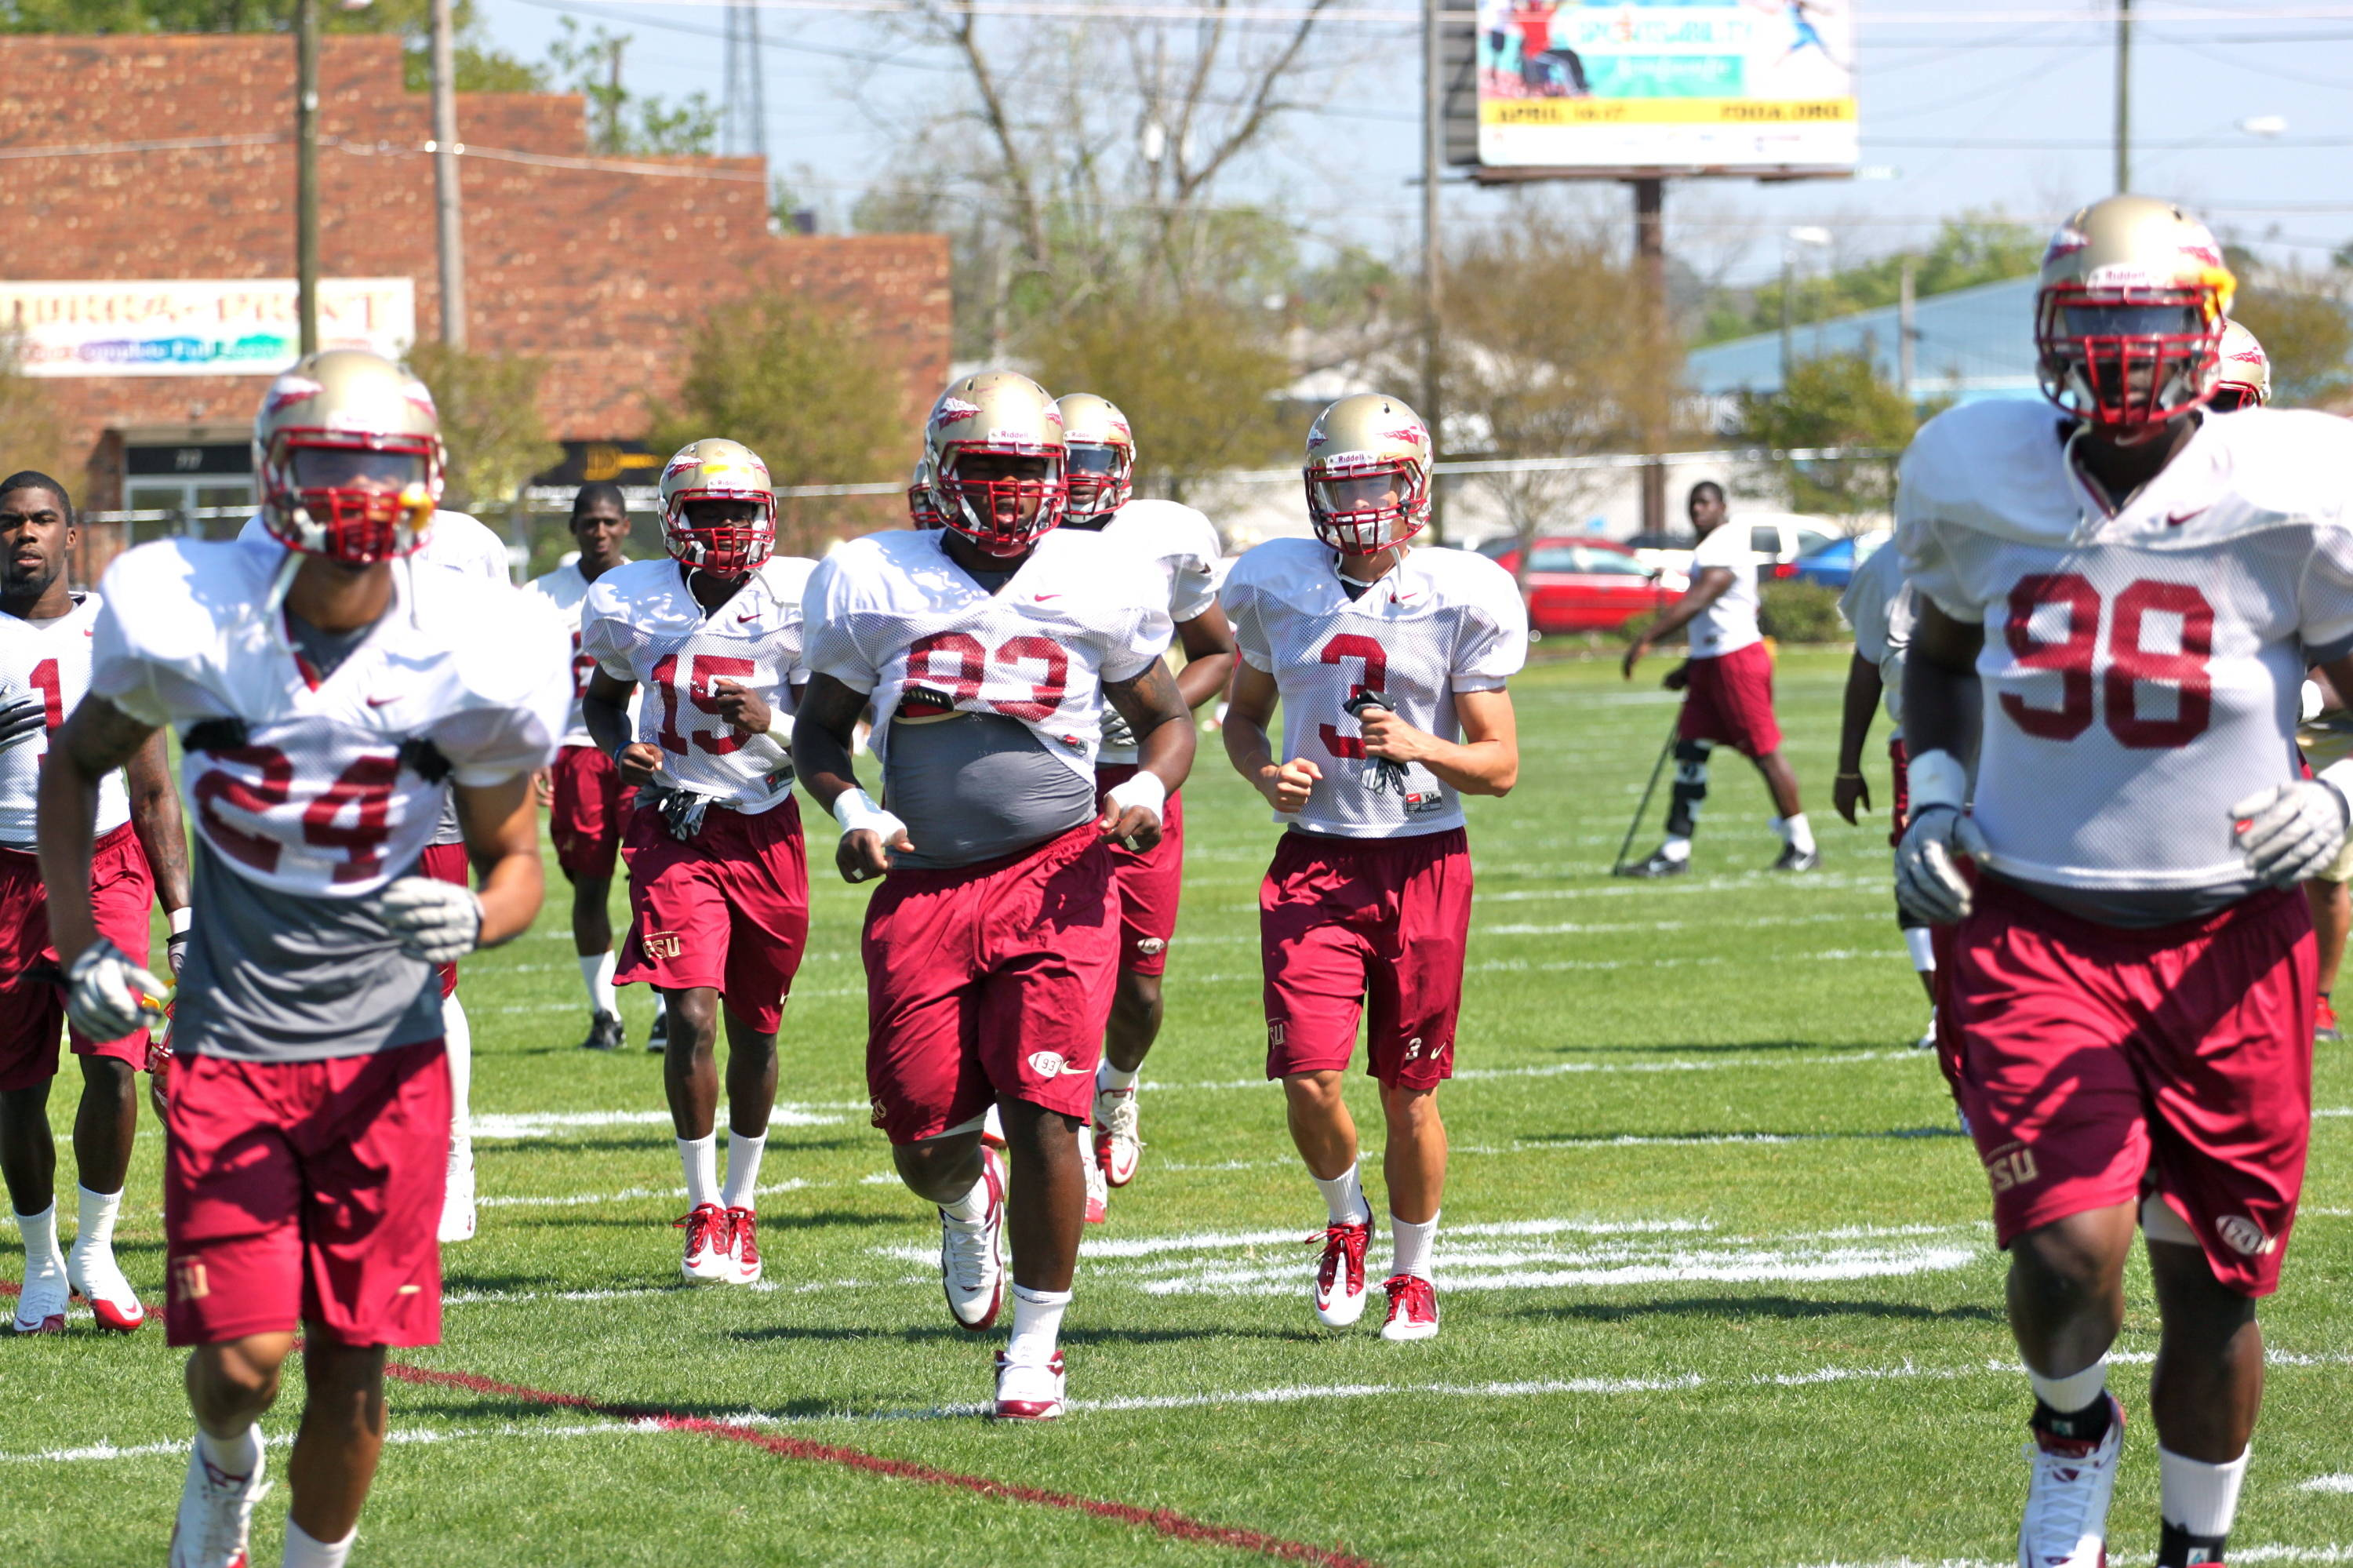 Everett Dawkins (93), Justin Bright (3) run in practice